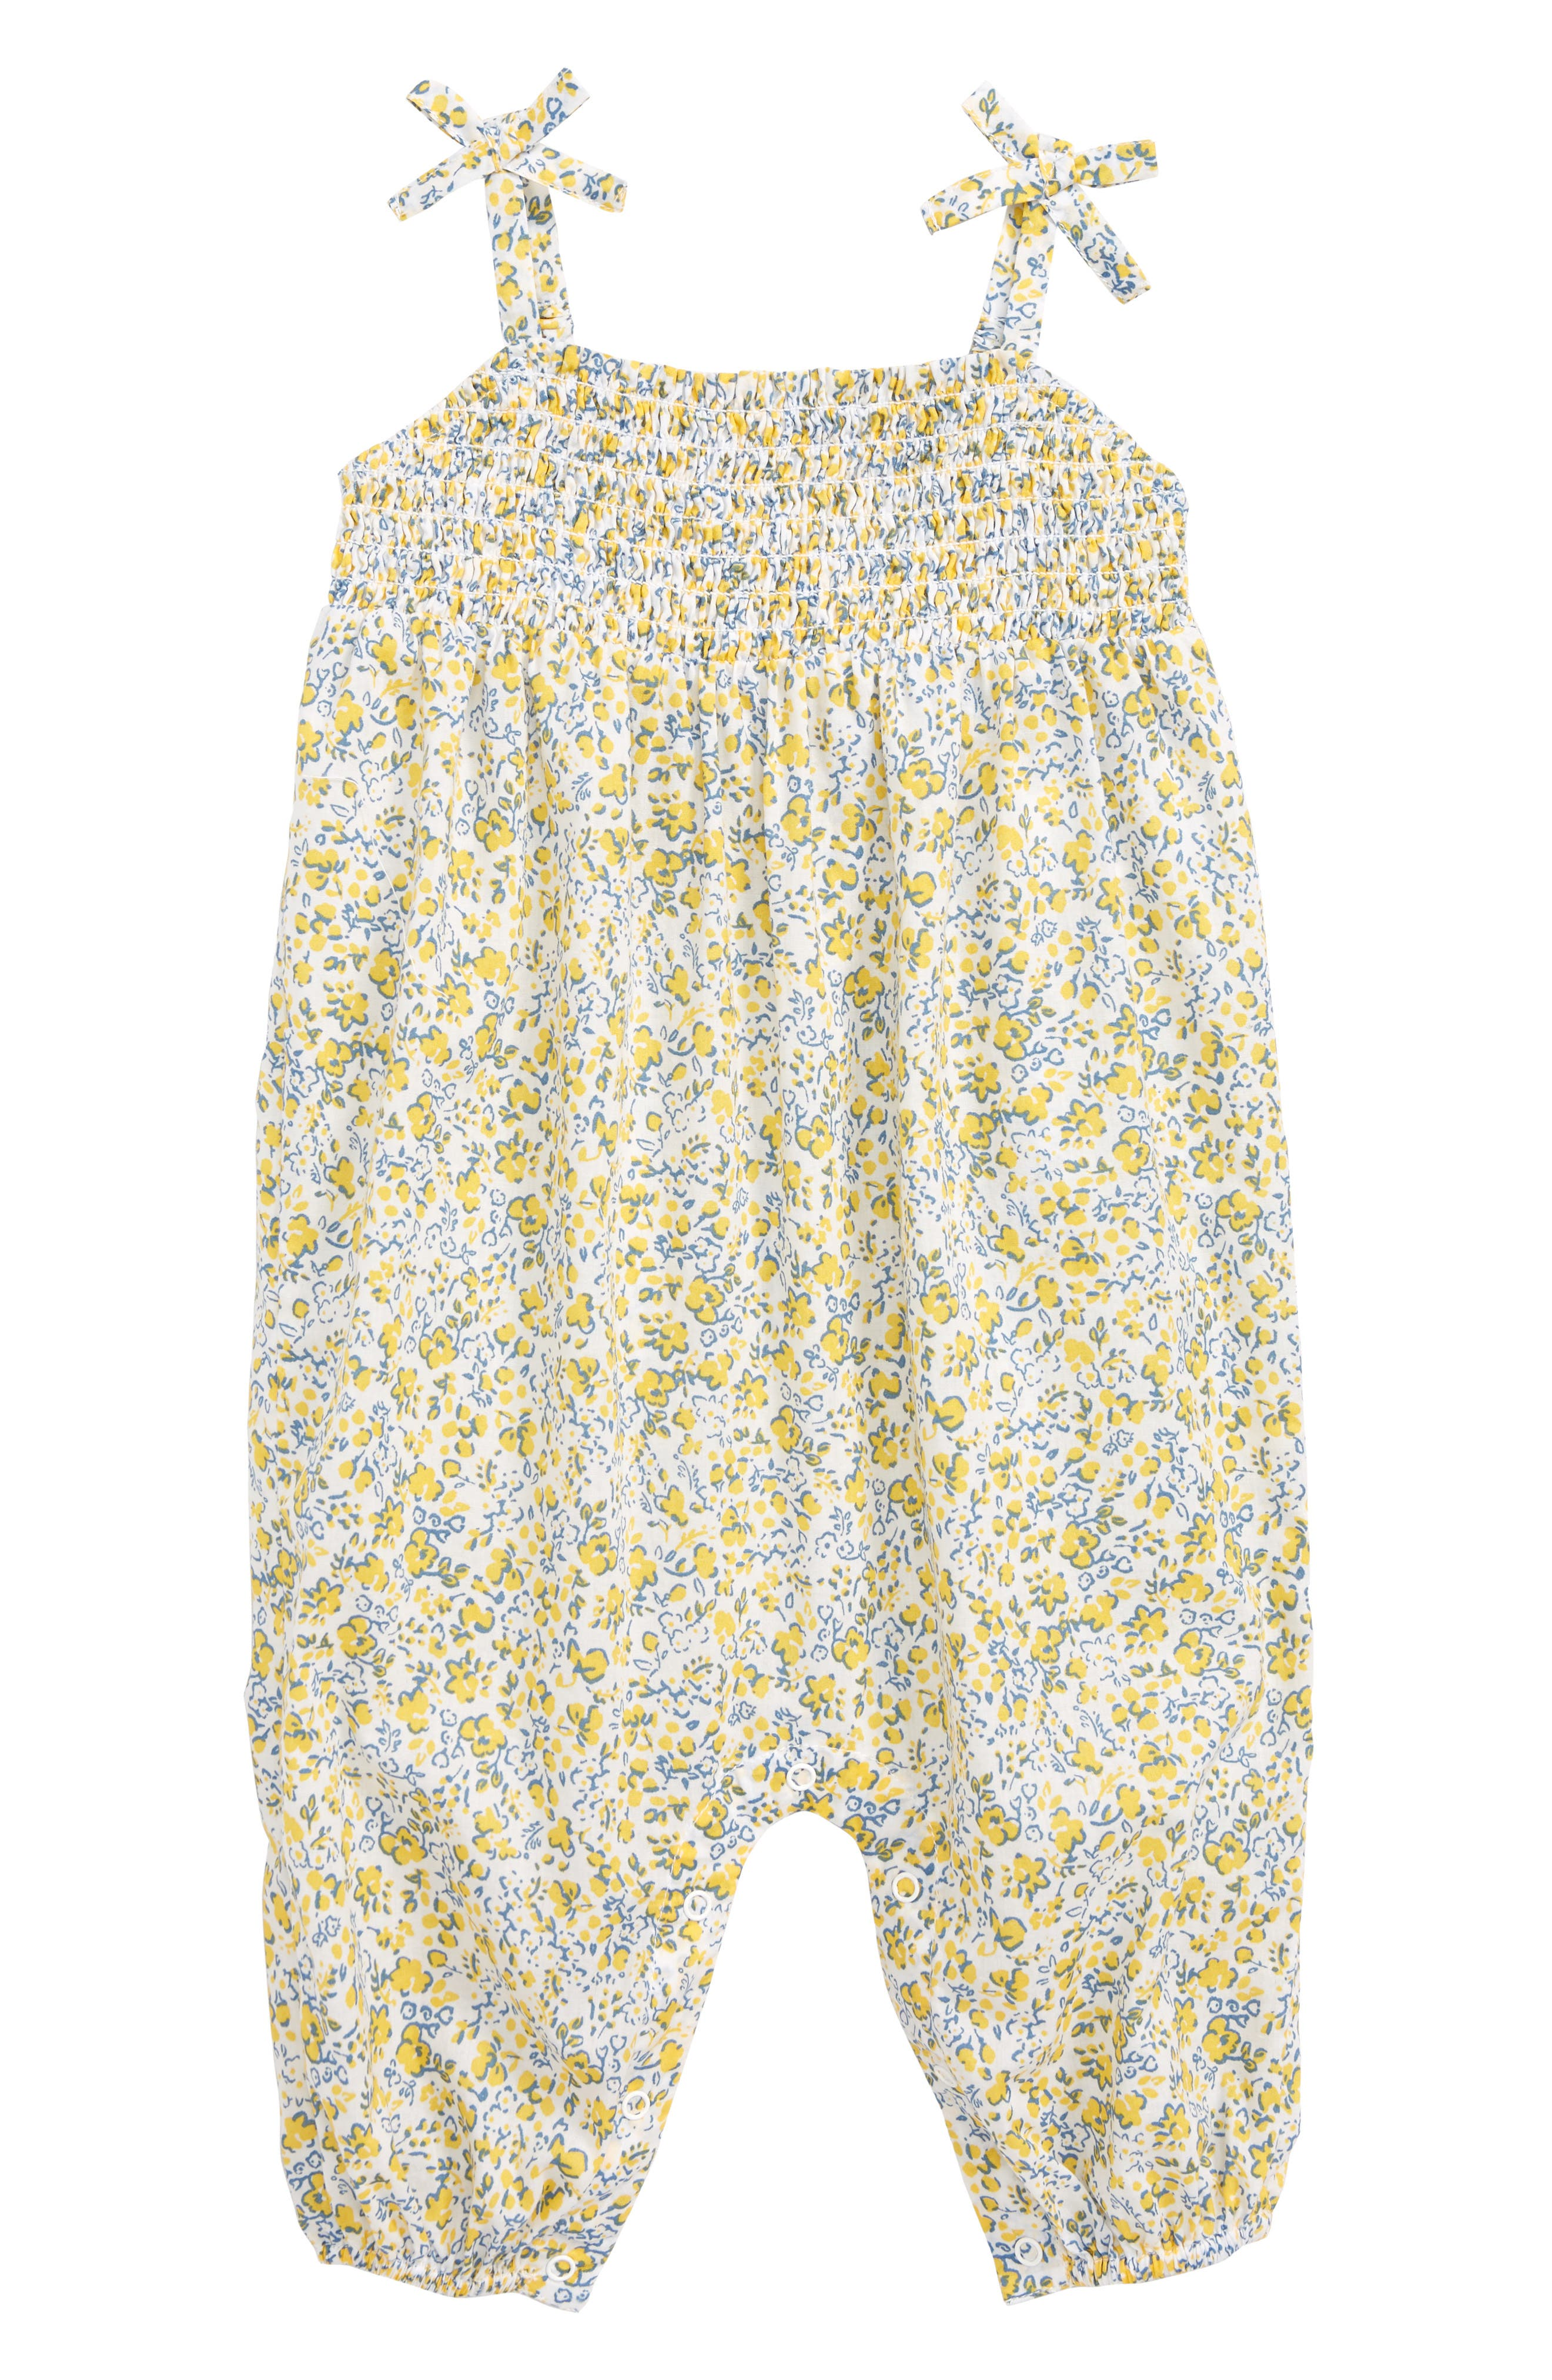 Ditzy Smock Romper,                         Main,                         color, White- Yellow Tonal Ditsy